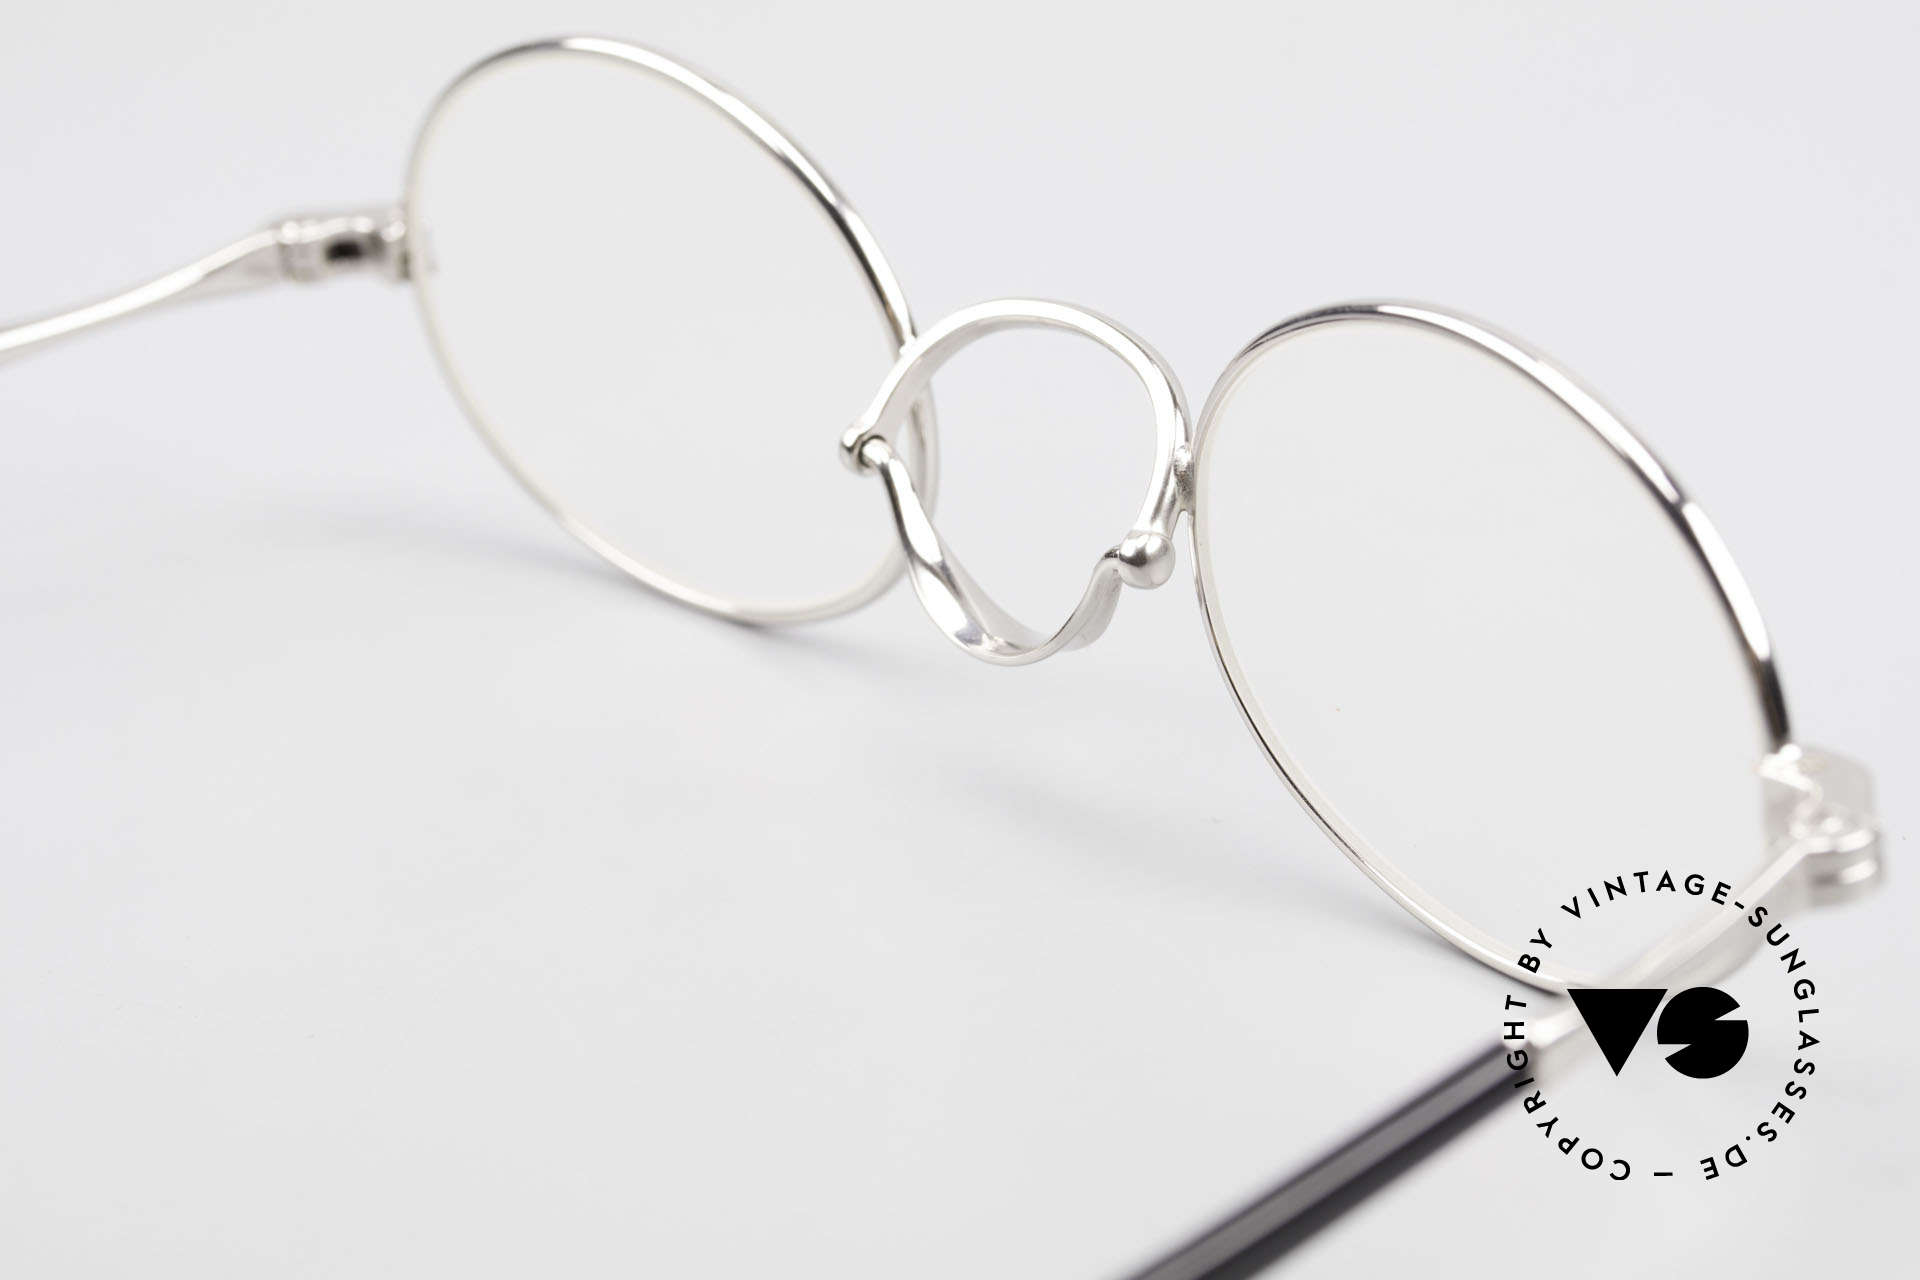 Lunor Swing A 33 Oval Swing Bridge Vintage Glasses, Size: medium, Made for Men and Women